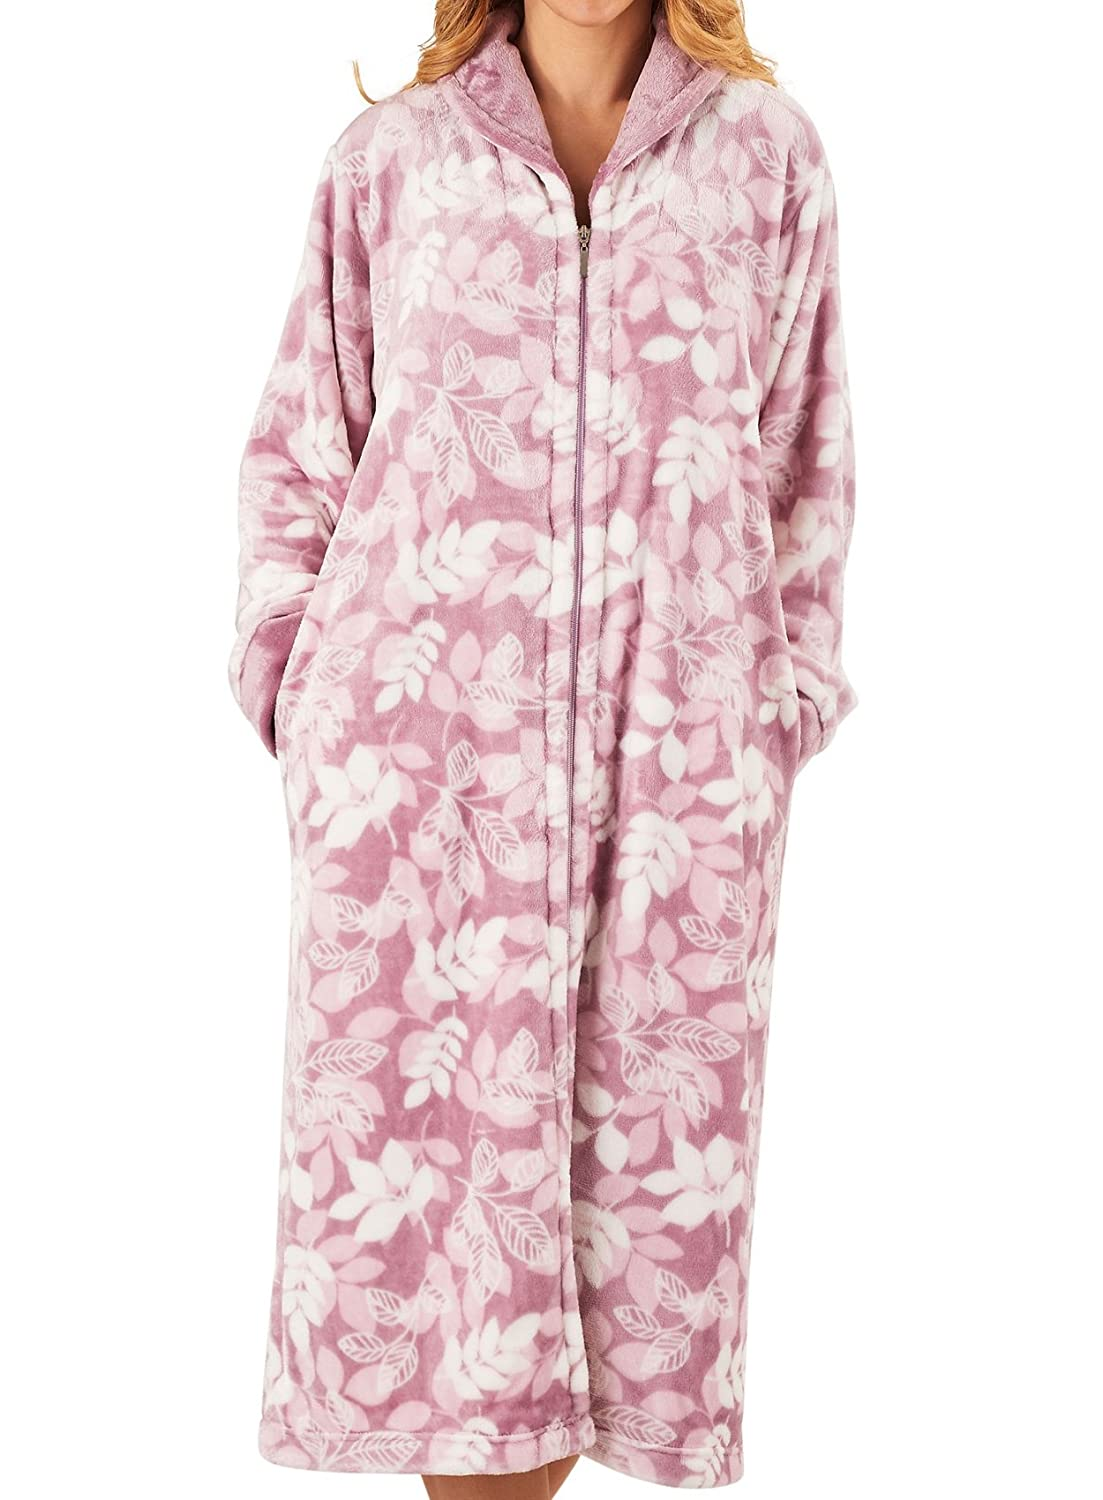 Slenderella Ladies Zip up Dressing Gown Womens Super Soft Leaf Print Bathrobe (Grey Pink)